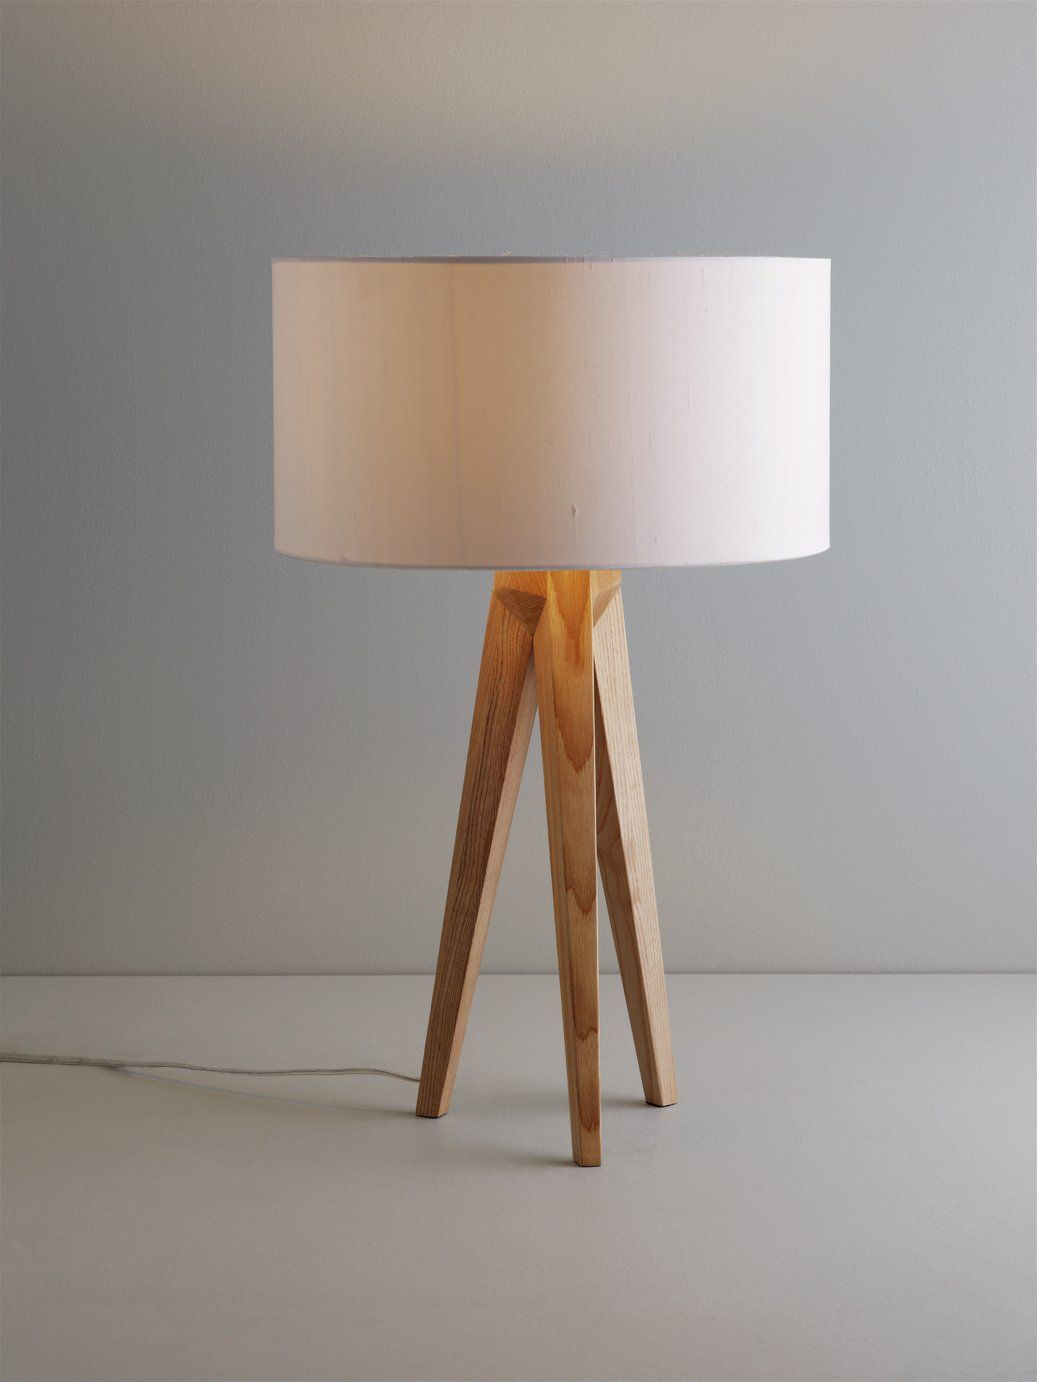 Habitat Tripod Table Lamp Base Ash Ash Base Habitat Lamp Table Tripod In 2020 Table Lamp Wood Table Lamp Base Tripod Table